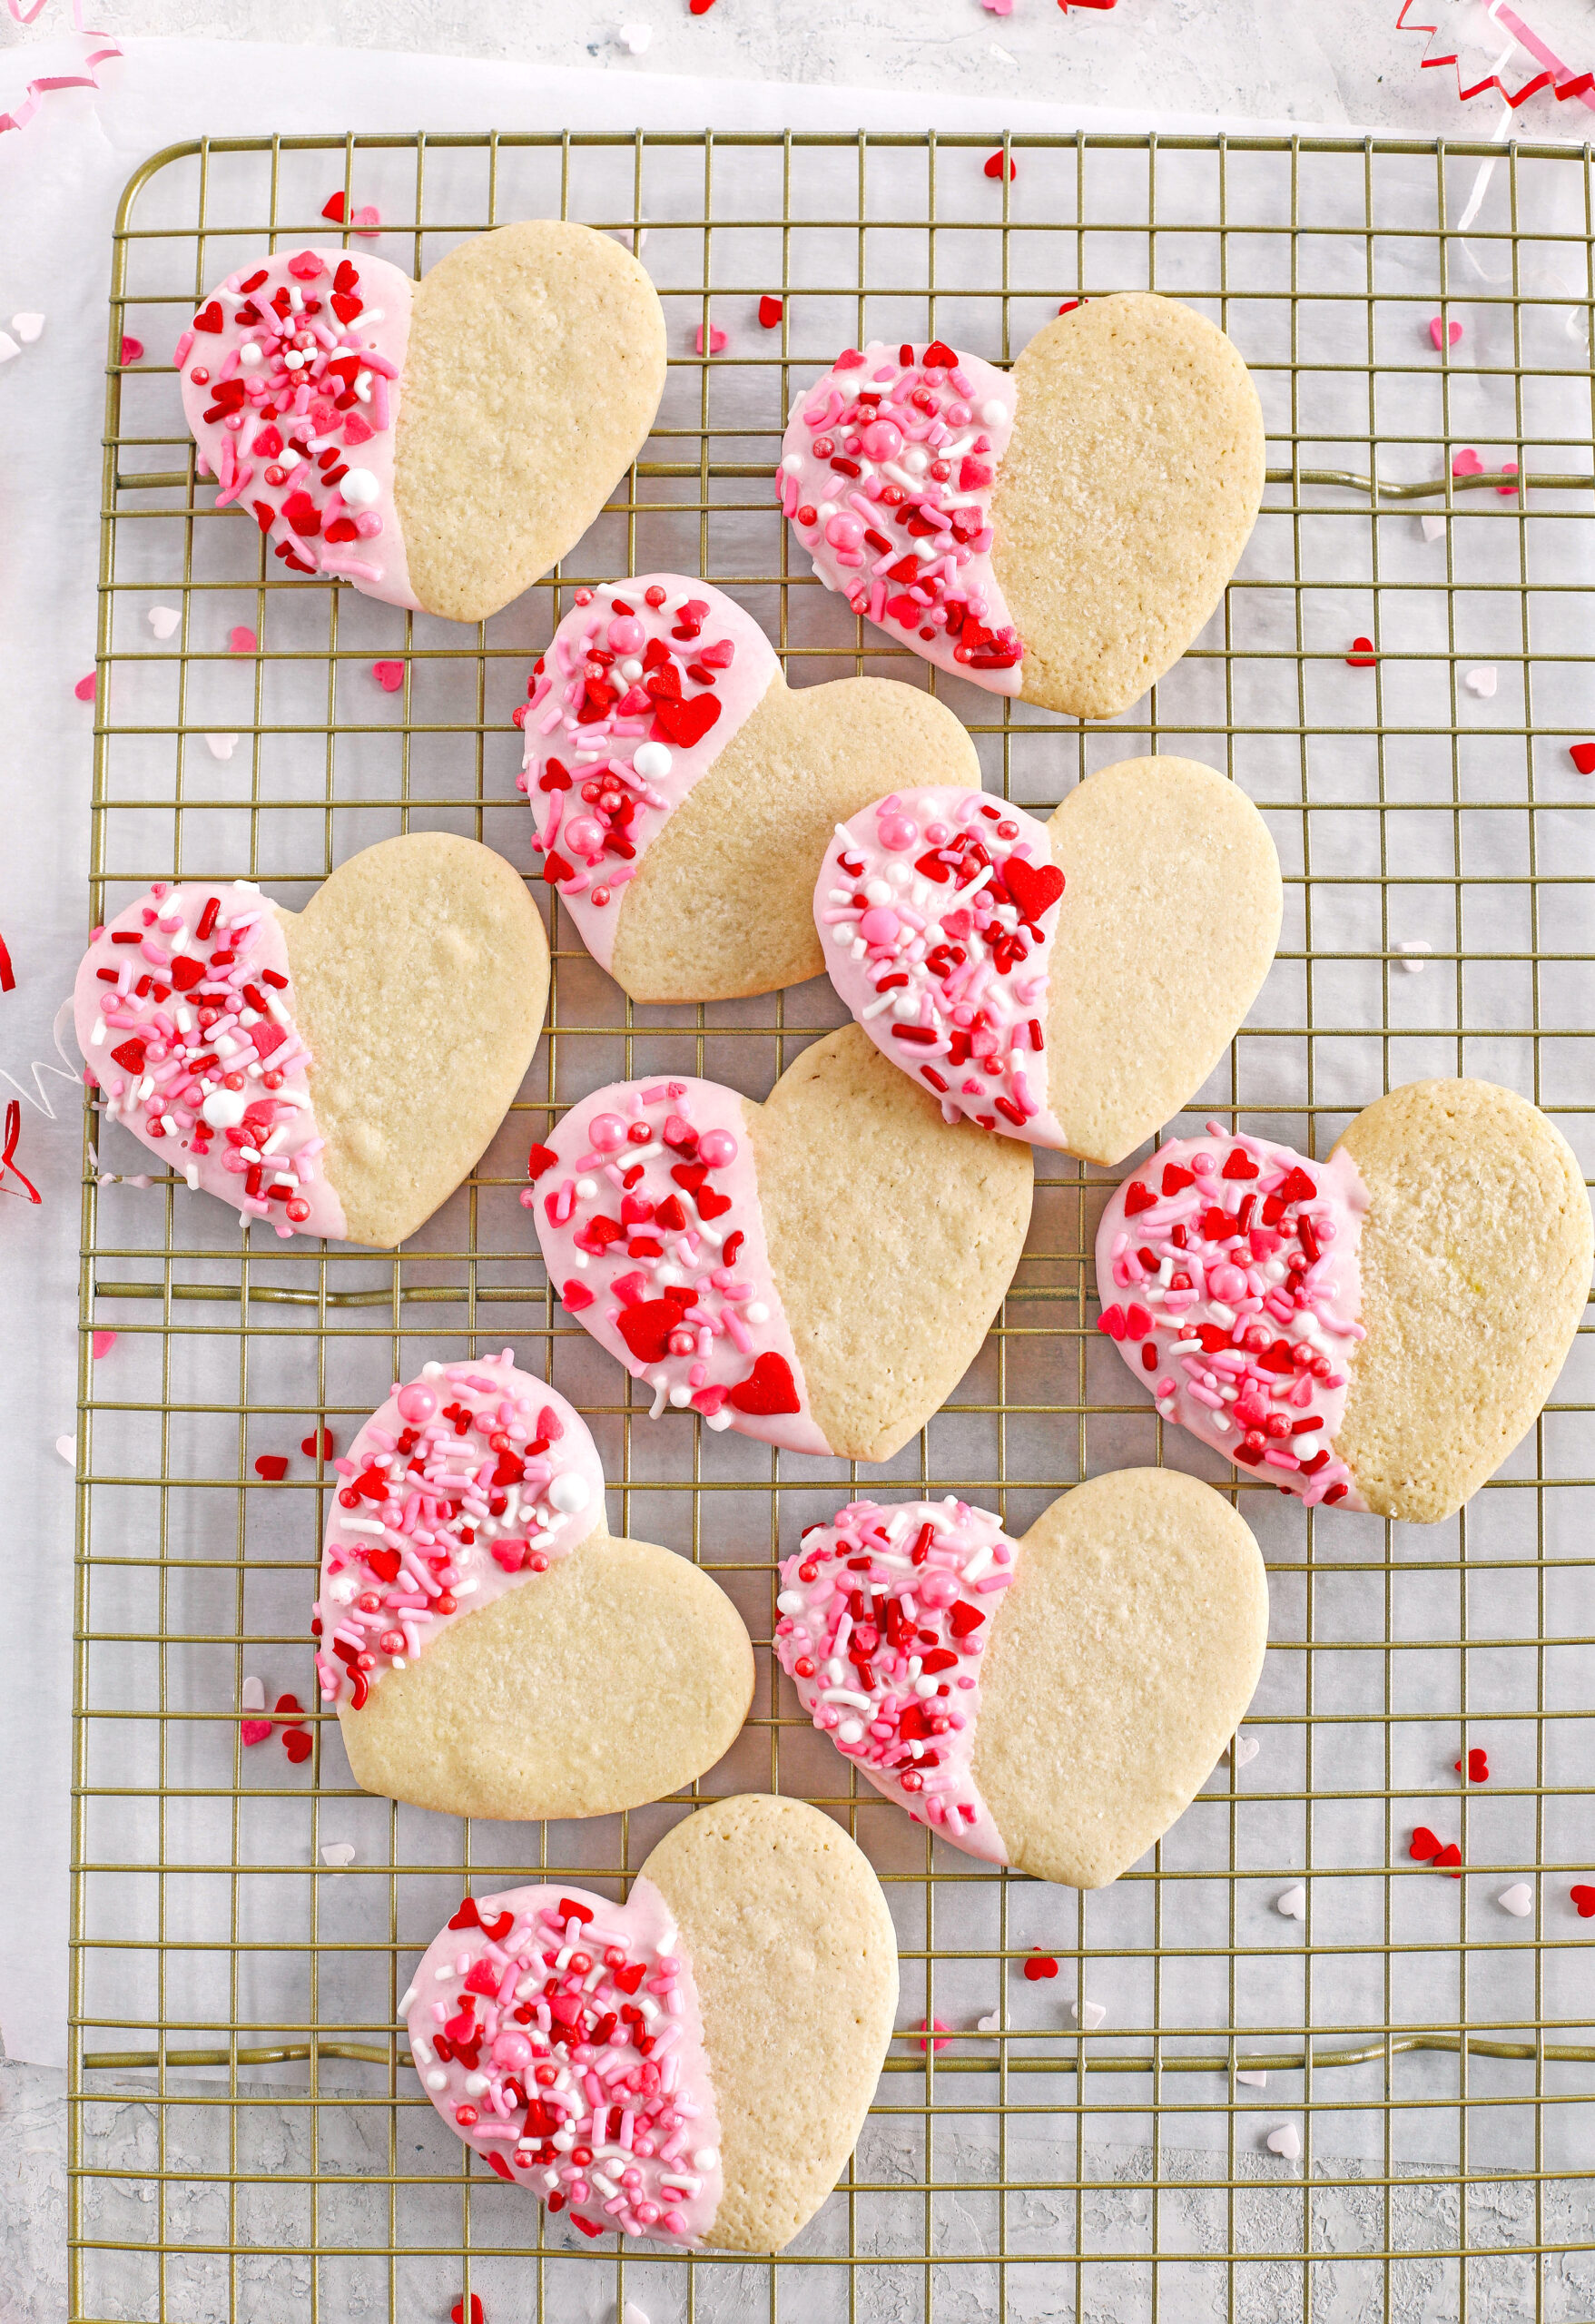 These Valentine's Day Grain-Free Sugar Cookies are soft on the inside and deliciously chewy on the outside! Cut them into fun shapes and have fun decorating them for Valentine's Day!